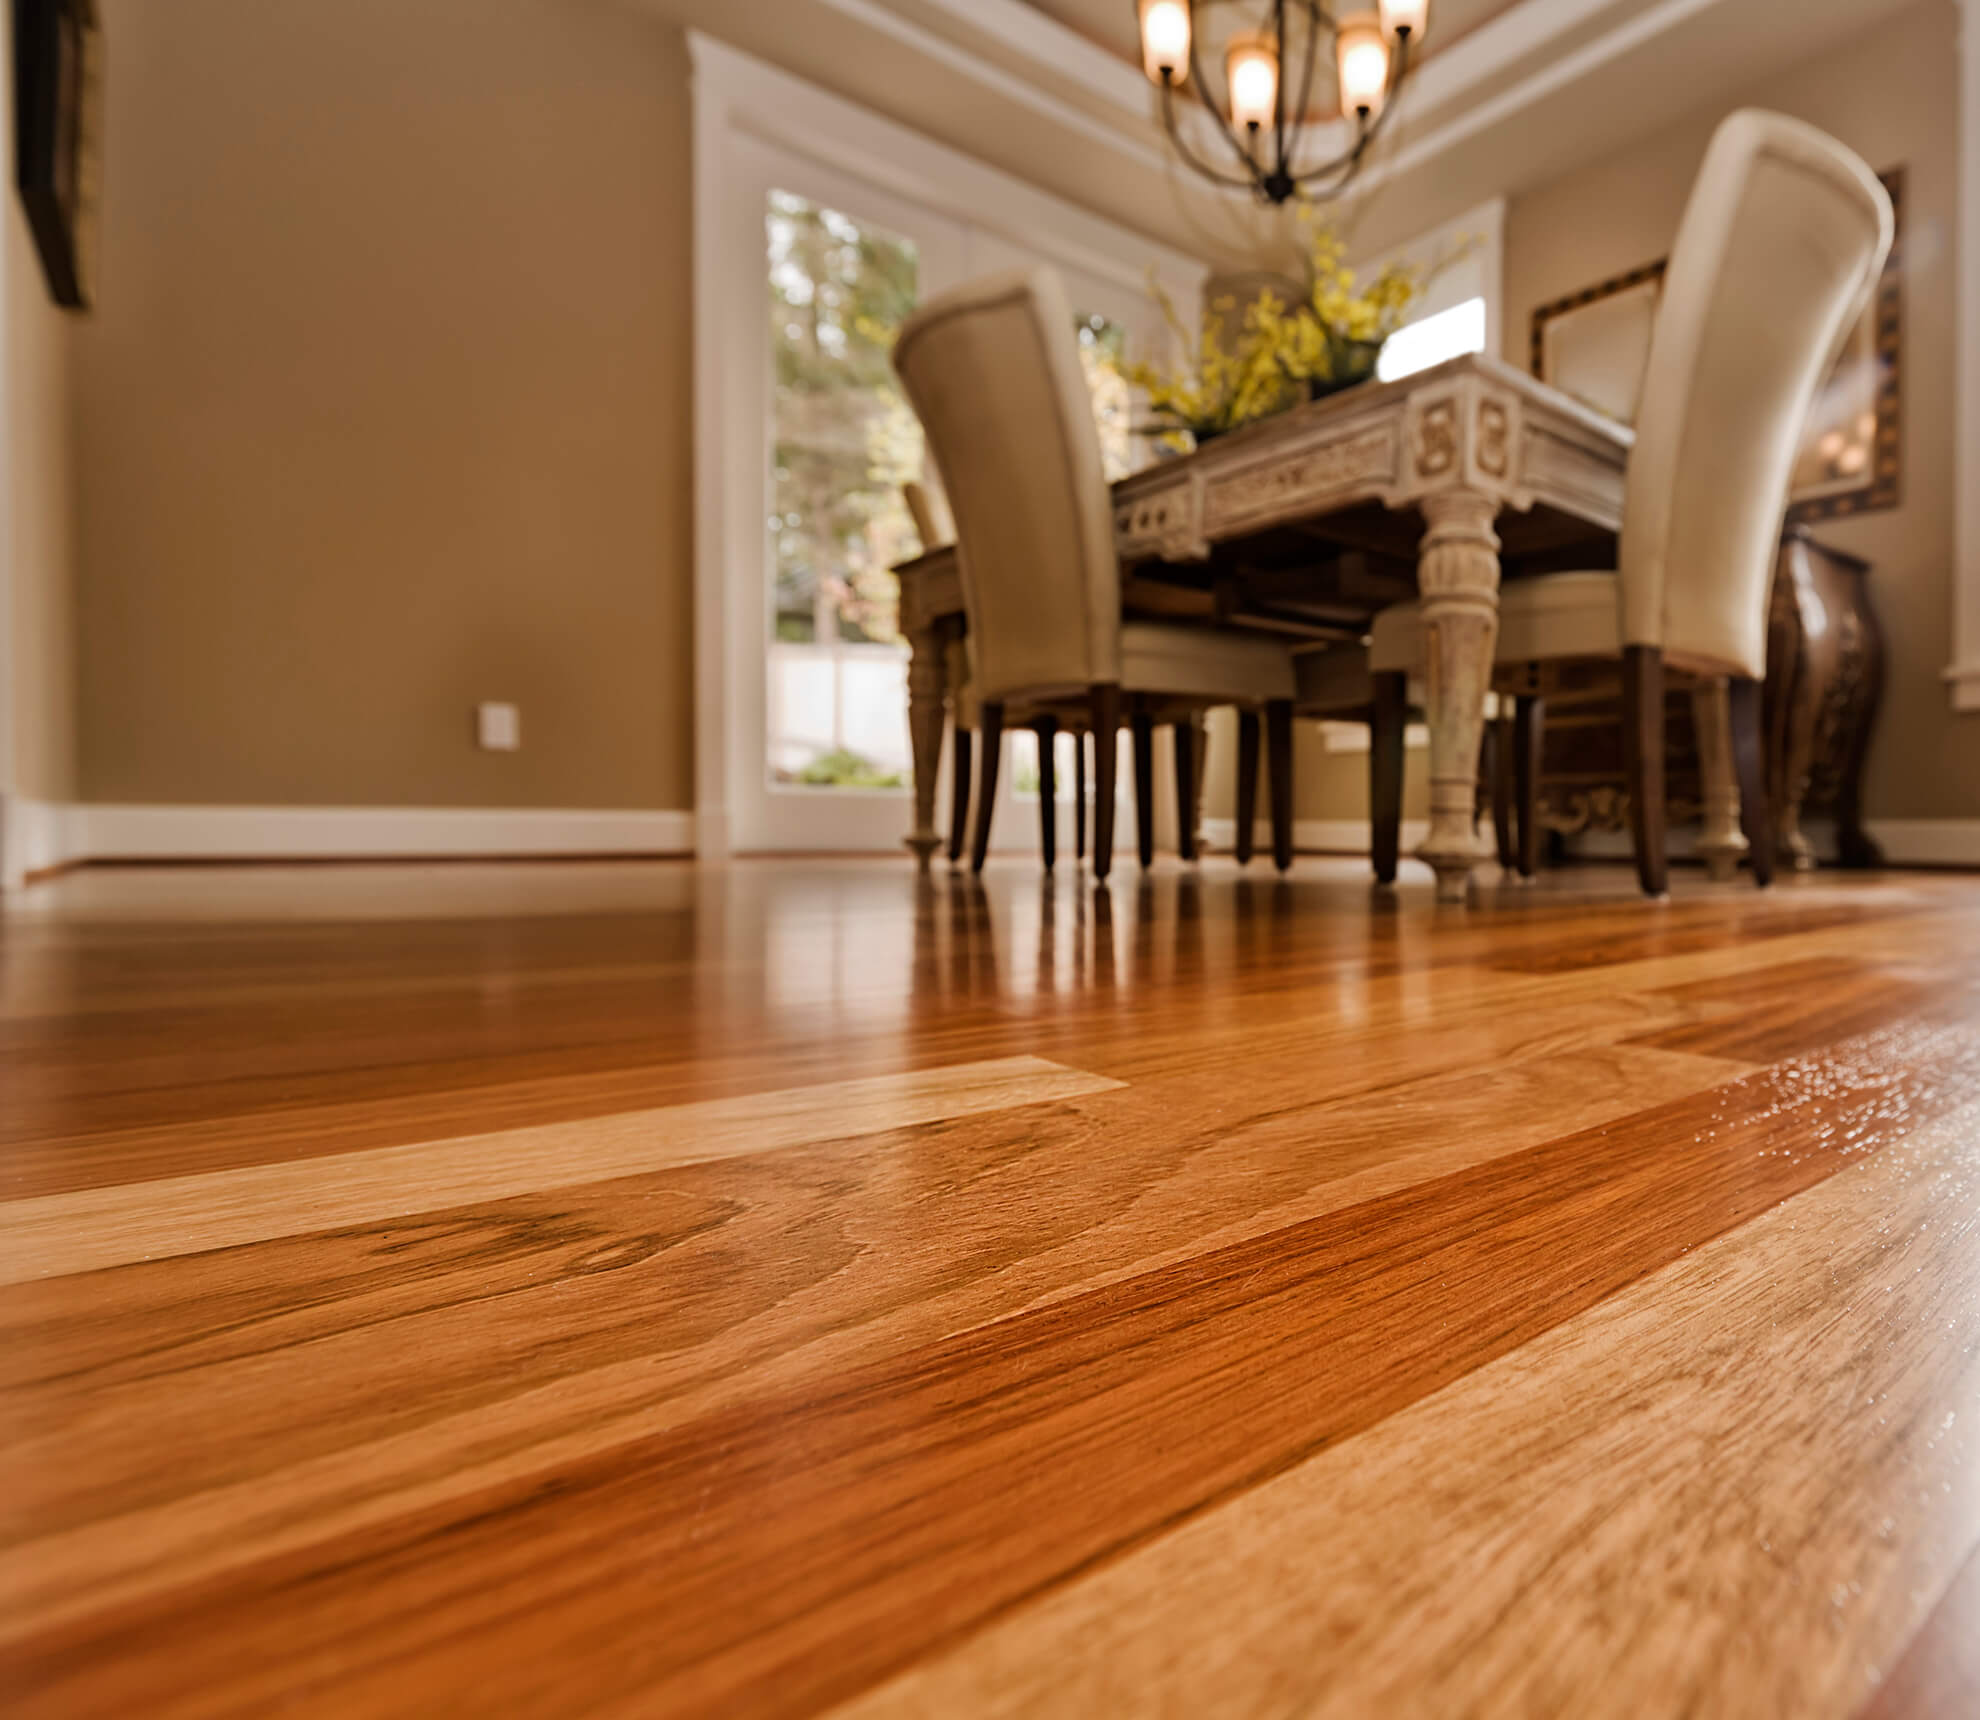 Residential Hardwood Floor Cleaning